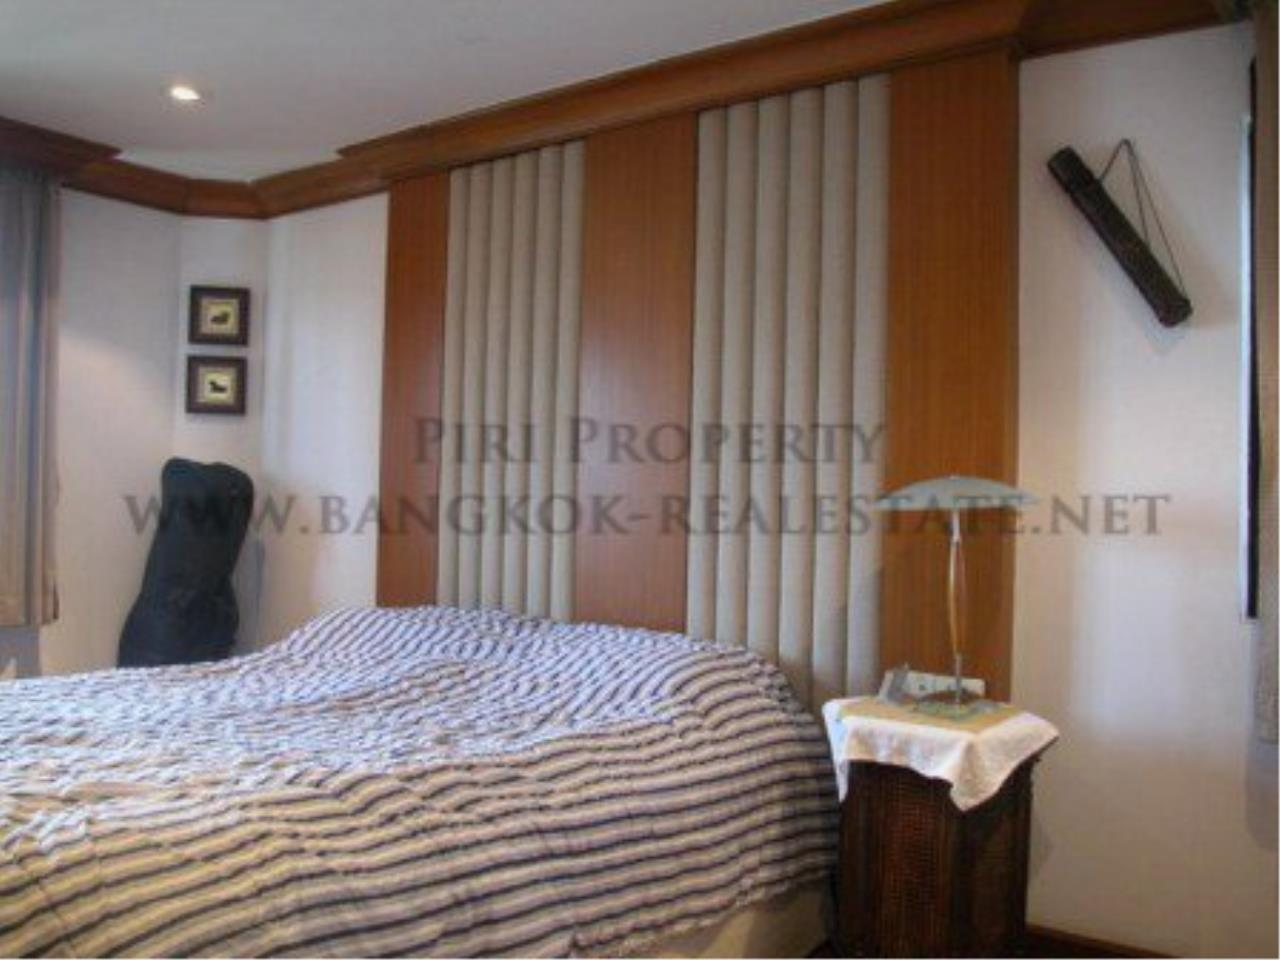 Piri Property Agency's Spacious Duplex Penthouse Condo in Sathorn with more than 400 SQM 3